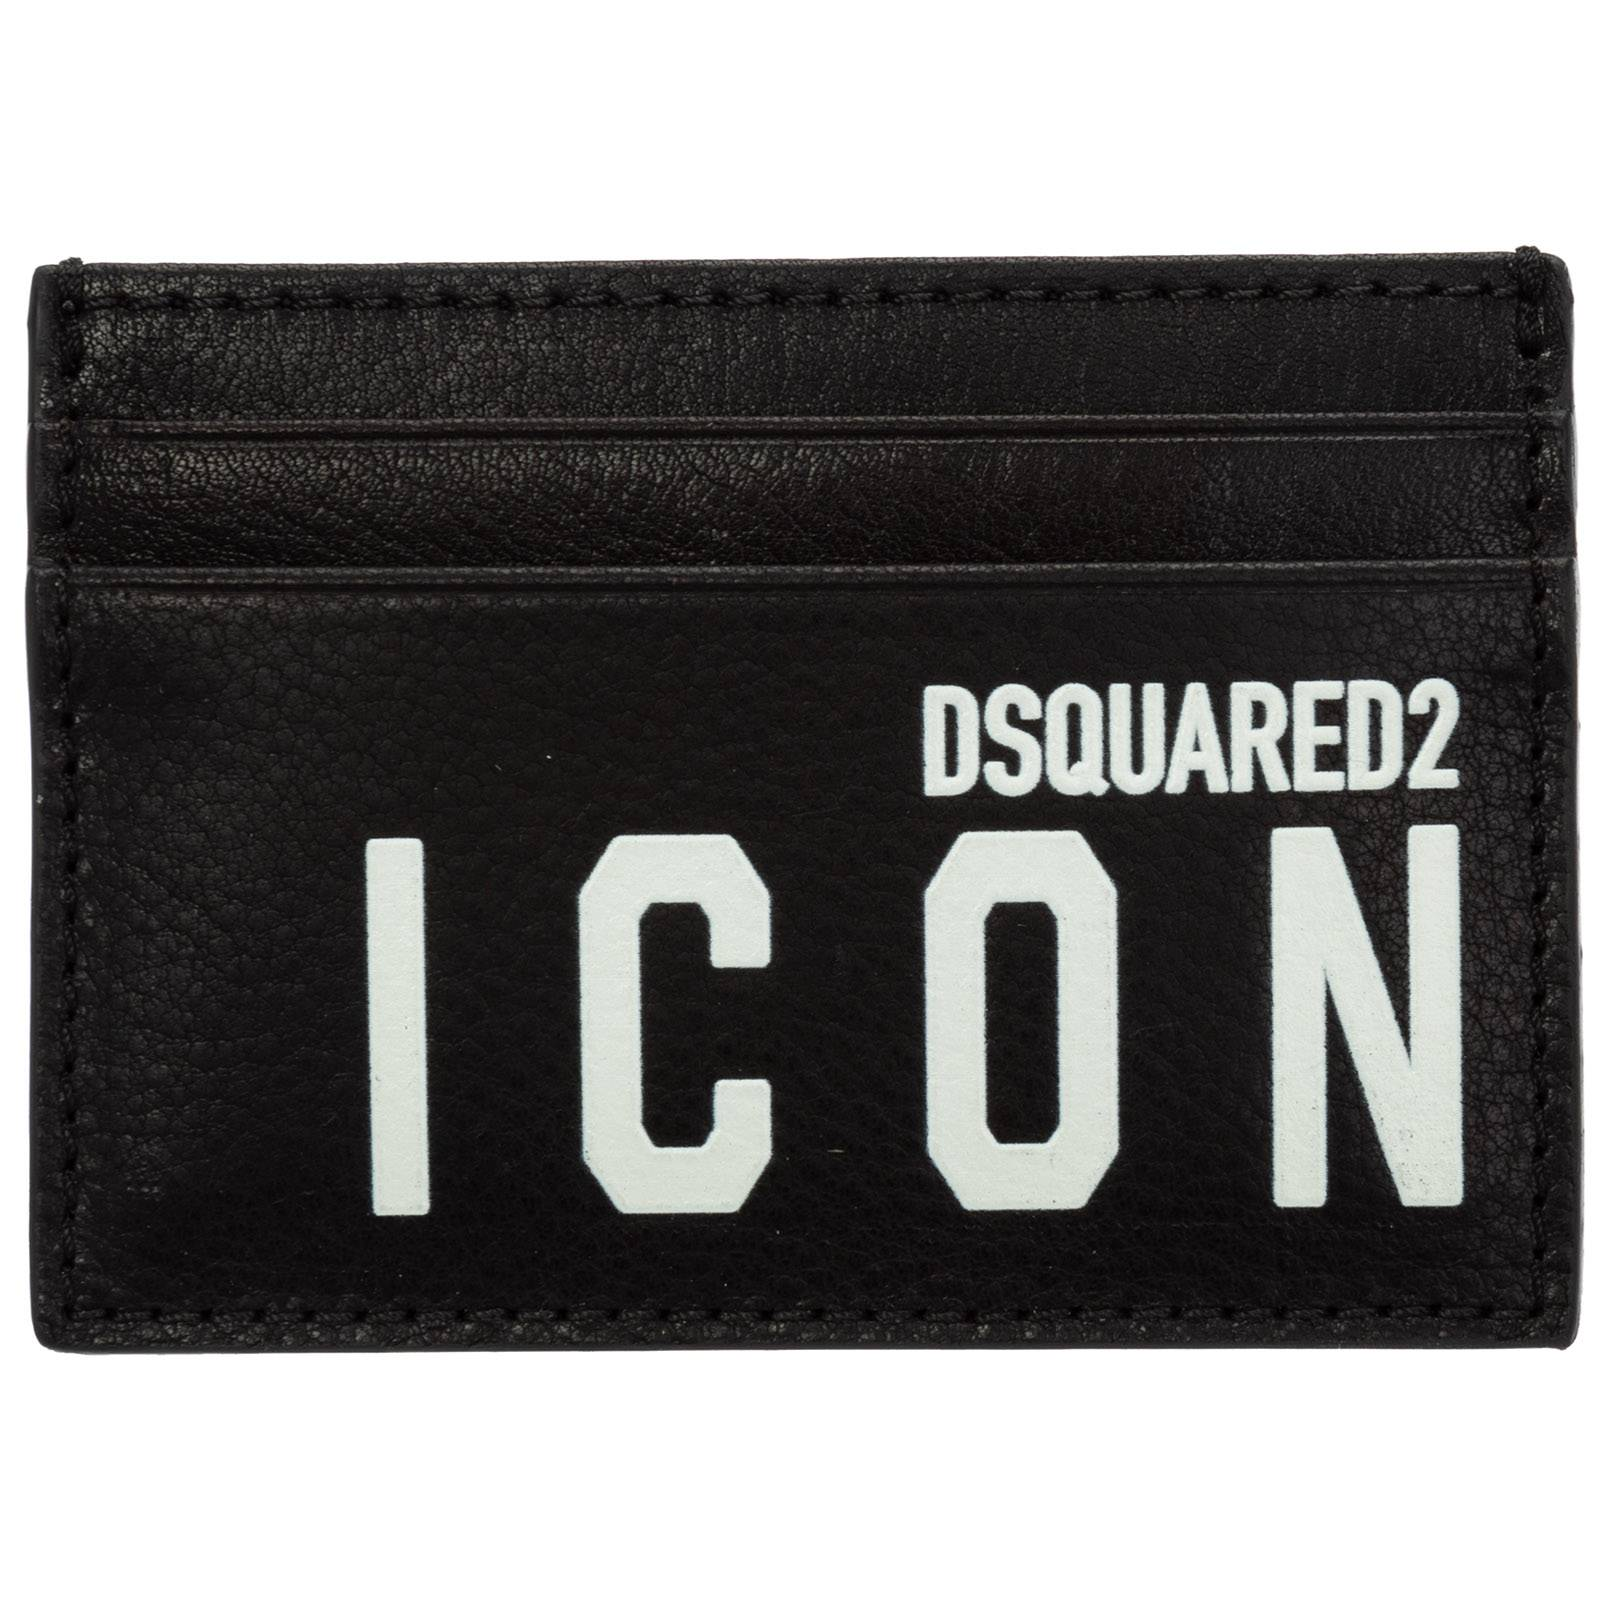 Dsquared2 Men's genuine leather credit card case holder wallet icon  - Black